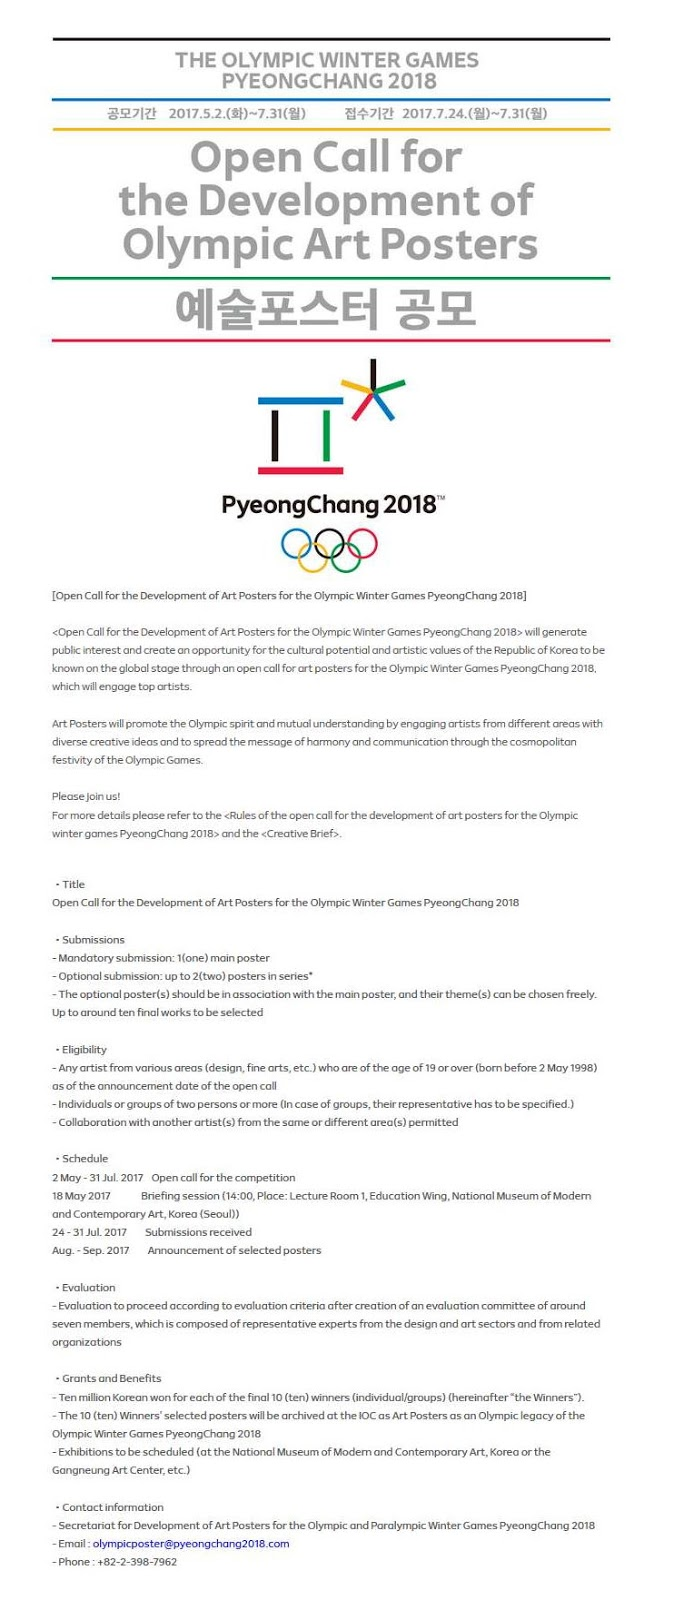 https://www.pyeongchang2018.com/en/bbs/notice/standard/view?menuId=729&bbsId=23&cnId=1398&rows=4&pageNo=1&searchOpt=&searchTxt=&sortSeCd=3&mainYn=&mainBbsId=